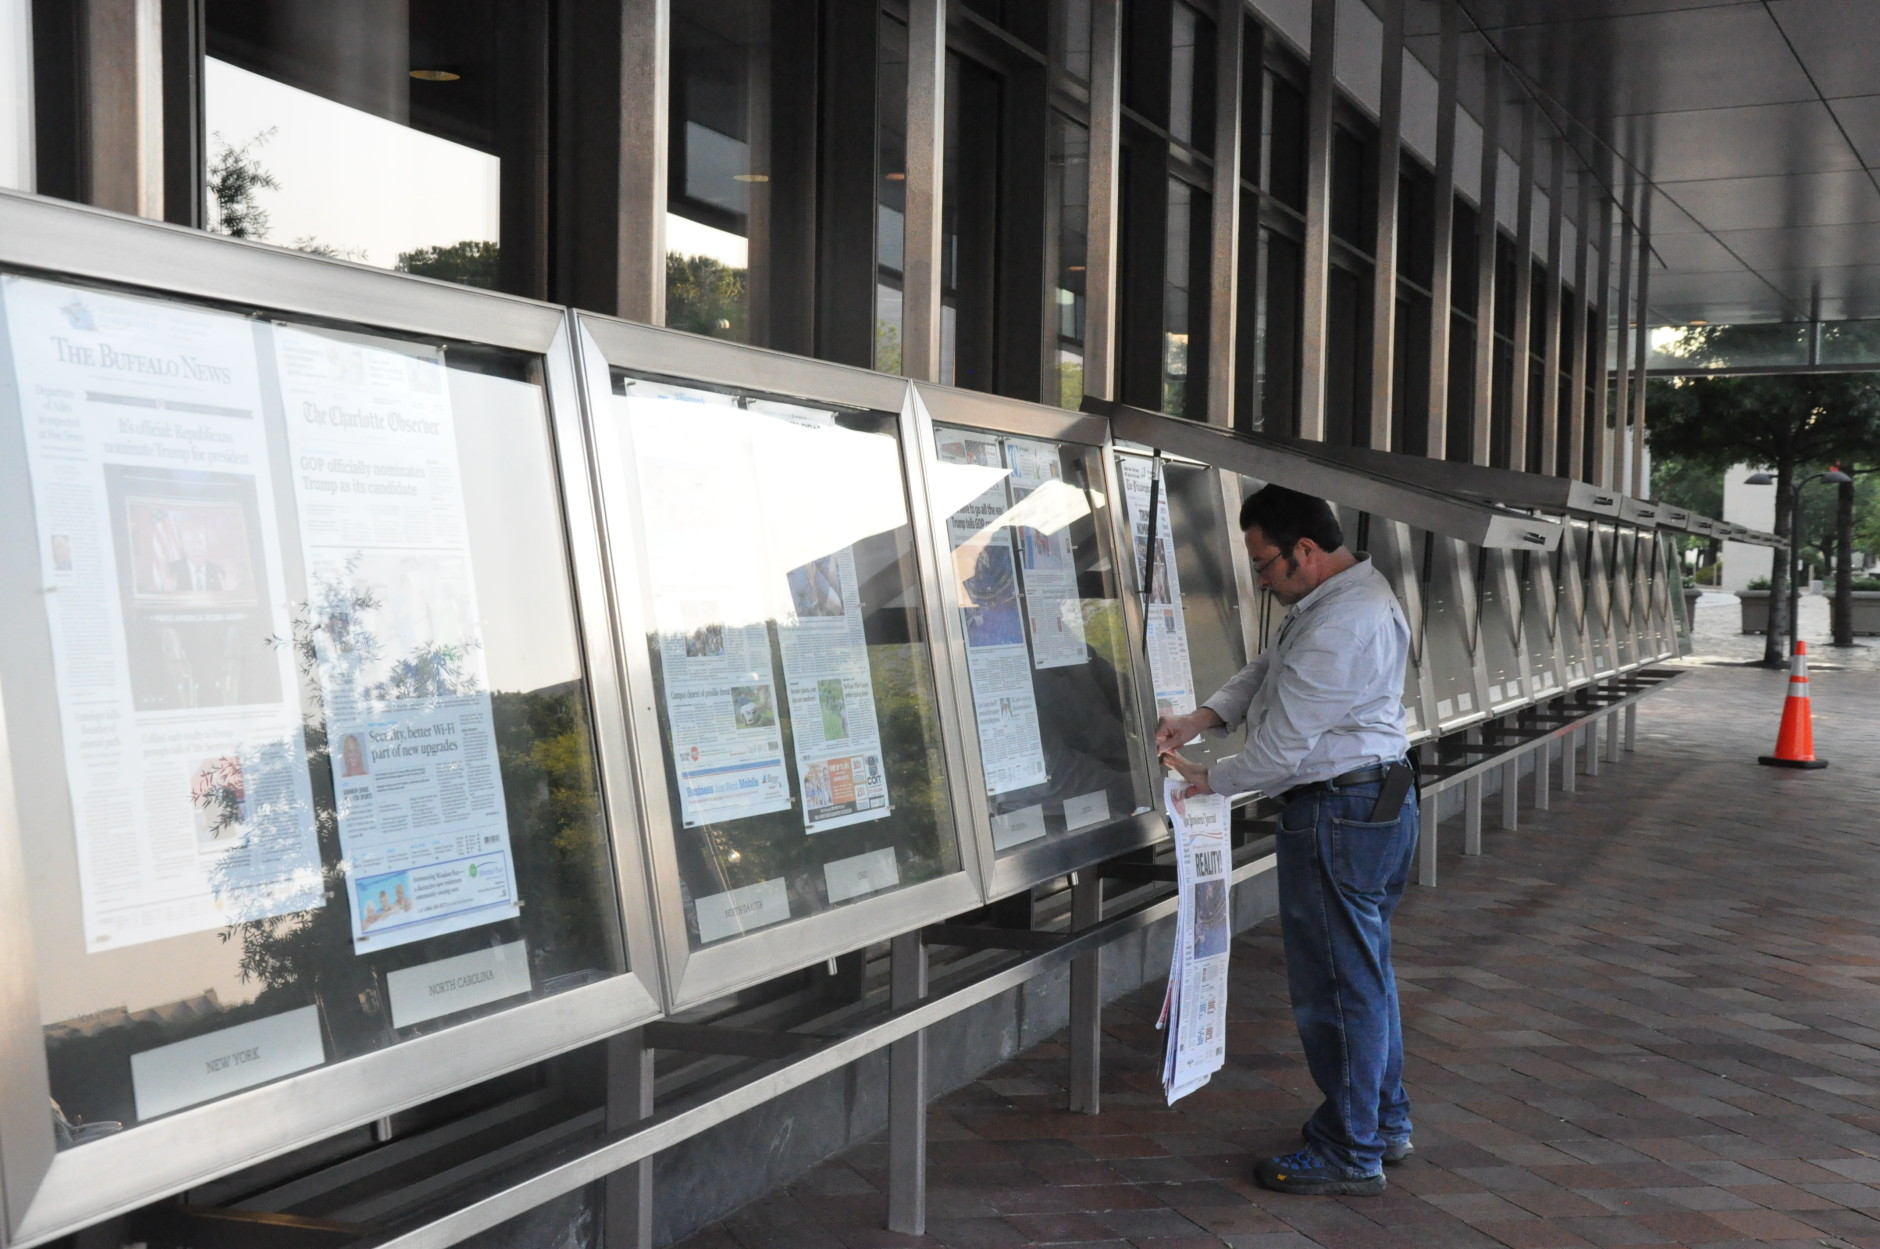 Every morning, Mike Machado prints and hangs the front pages of newspapers from the U.S. and across the world outside the Newseum on Pennsylvania Avenue. (WTOP/Rachel Nania)